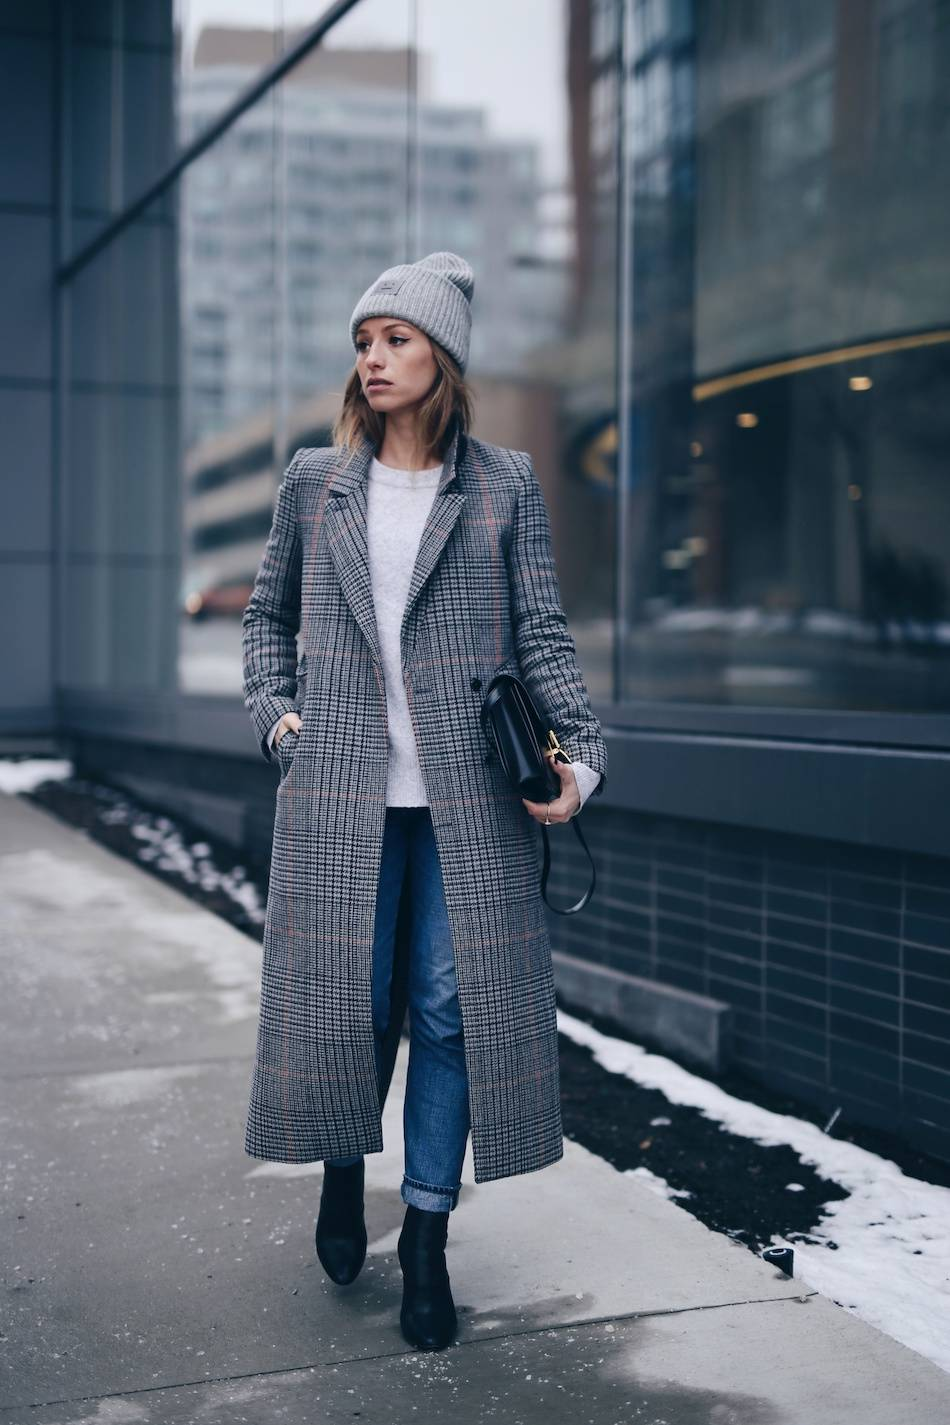 Style and beauty blogger Jill Lansky of The August Diaries warm and stylish outfit in Acne Pansy toque, plaid maxi coat, Celine black box bag, 3.1 Phillip Lim boots